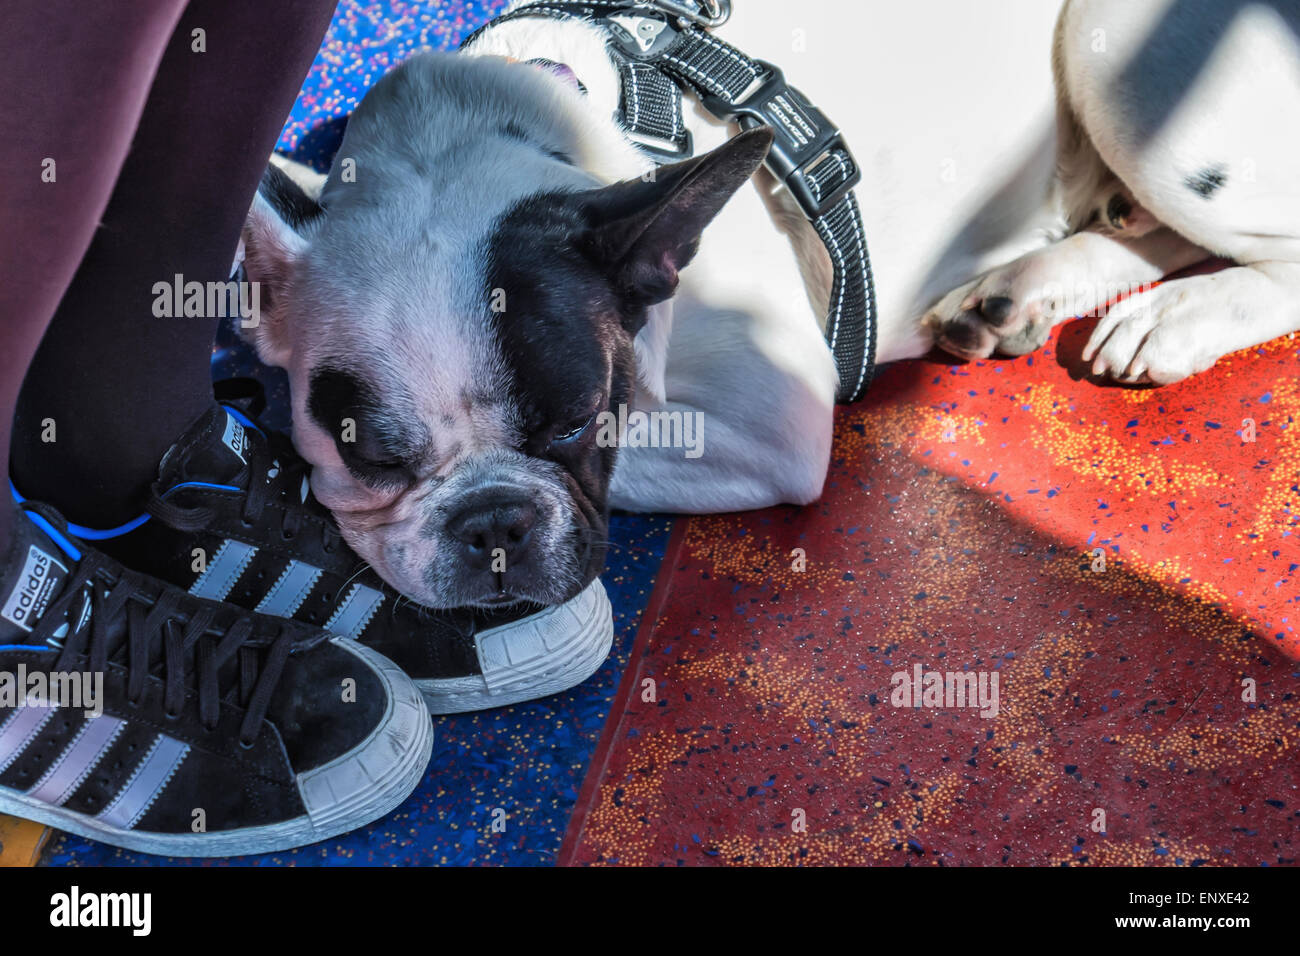 Tired sleeping dog rests its head on feet of owner - Stock Image